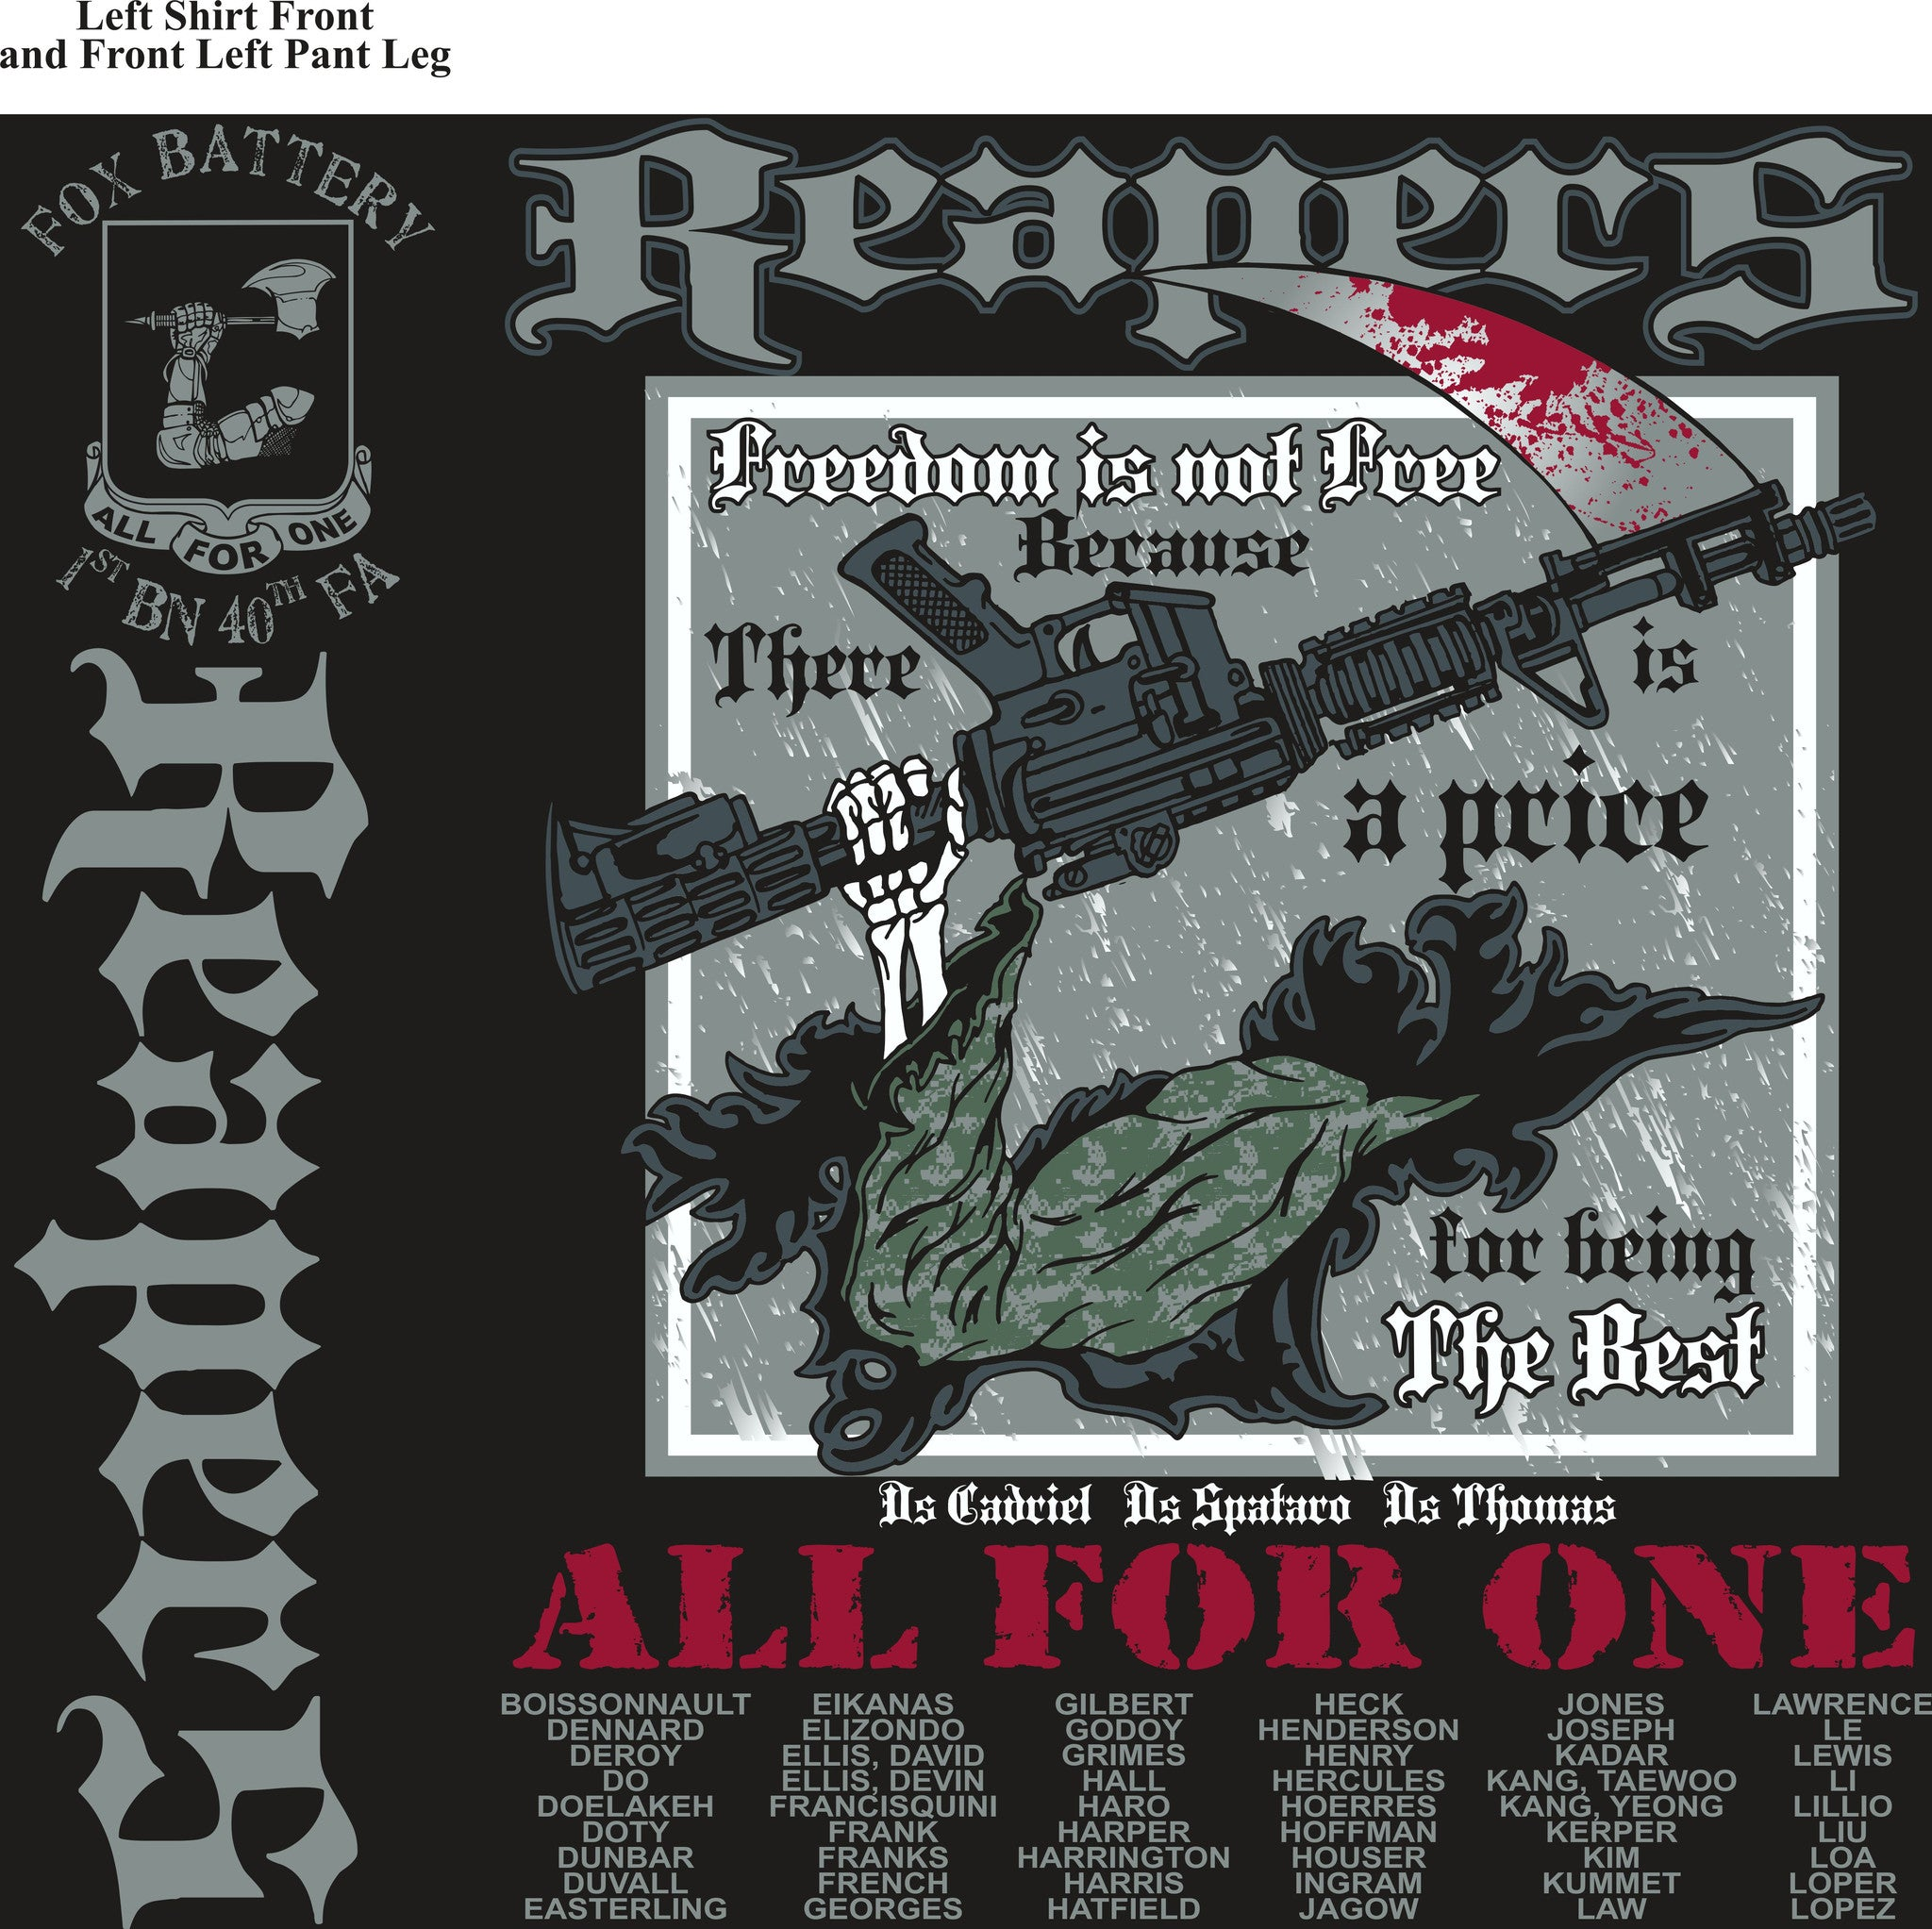 PLATOON SHIRTS (digital) FOX 1st 40th REAPERS FEB 2016